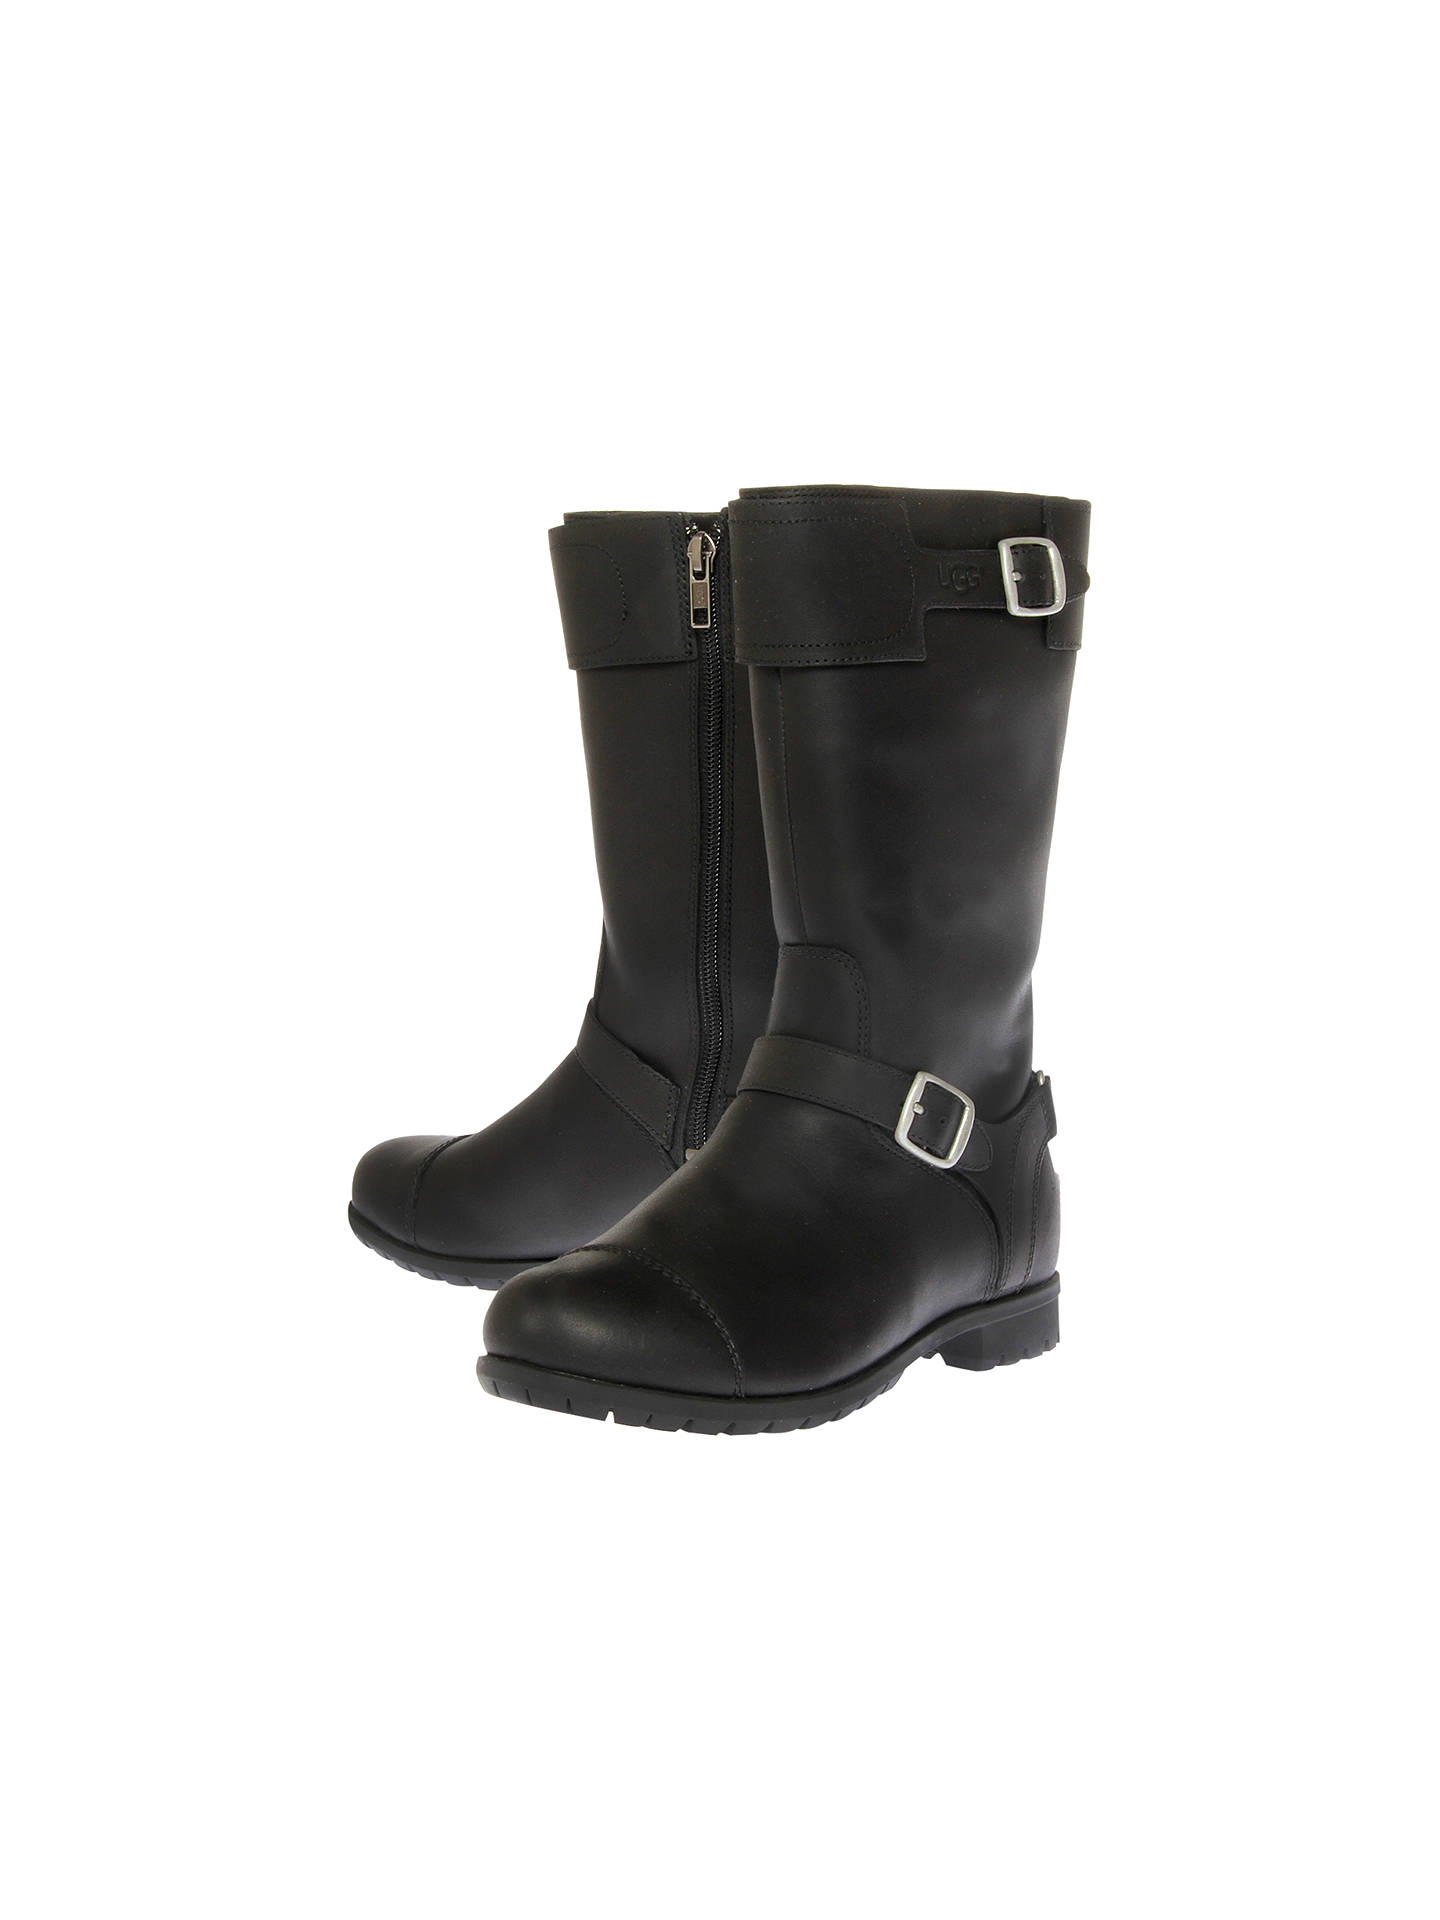 715bedab469 UGG Gershwin Leather Buckled Boots, Black at John Lewis & Partners